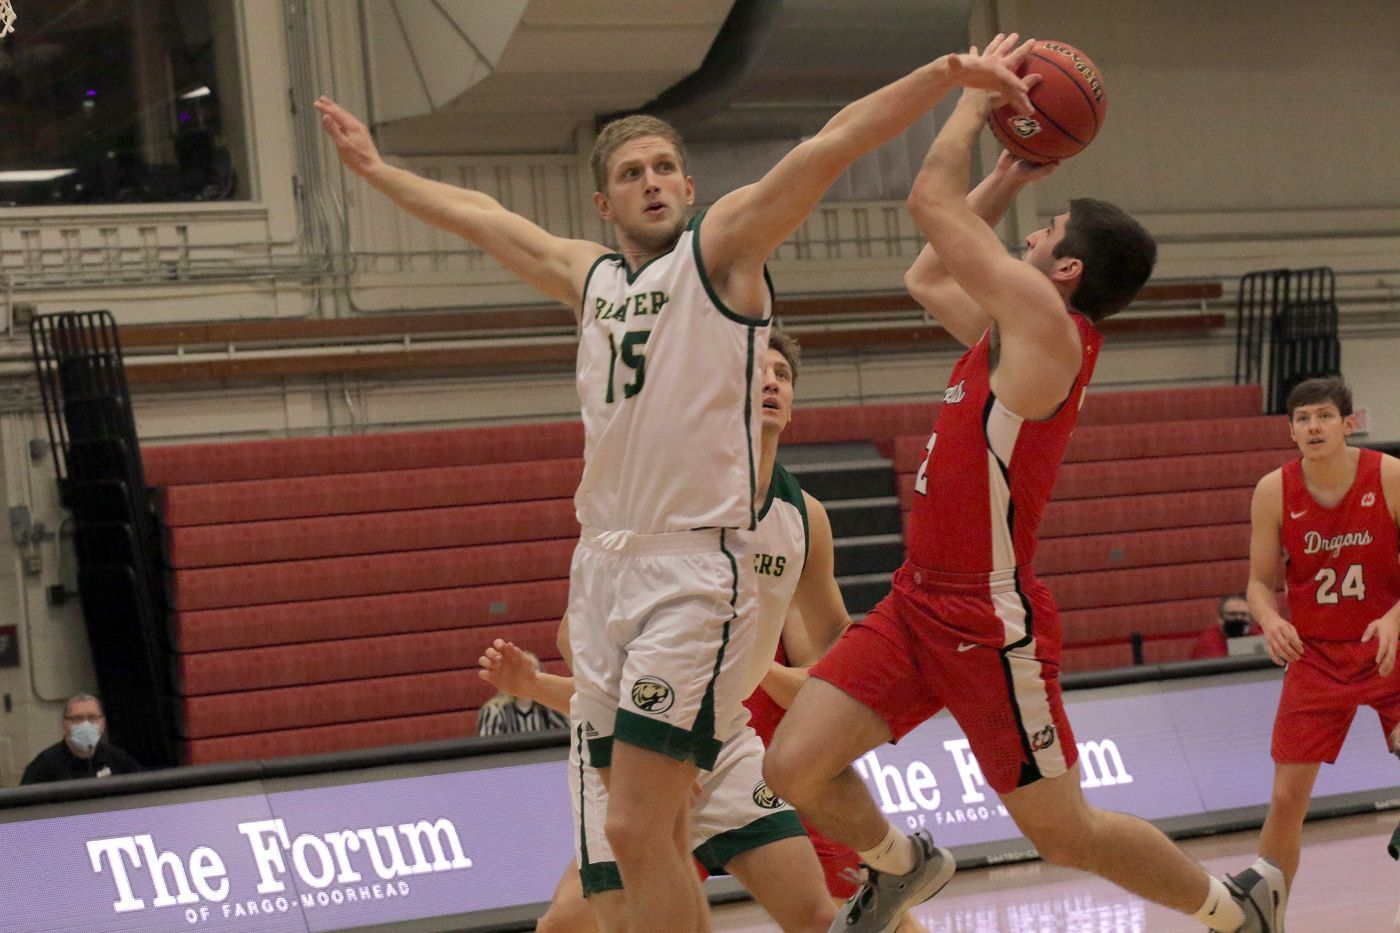 Three-point barrage sends Beavers down with 83-61 loss to Dragons